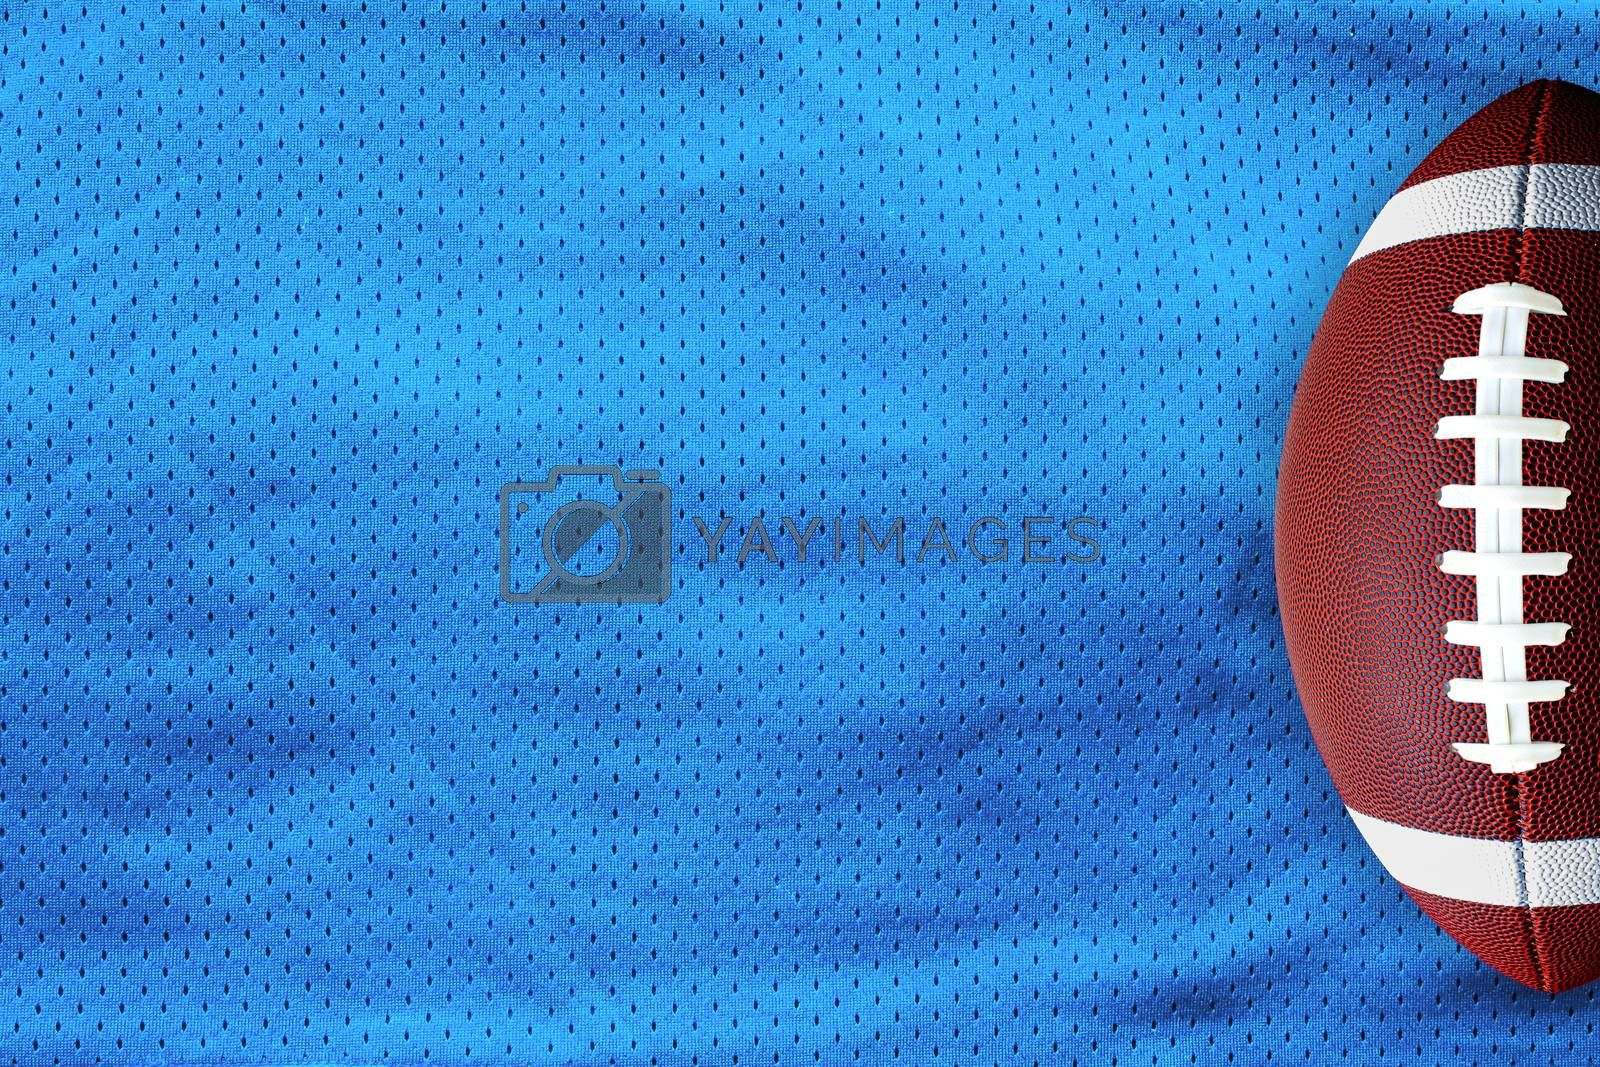 Sky Blue American Football Jersey textured with a football on a horizontal view